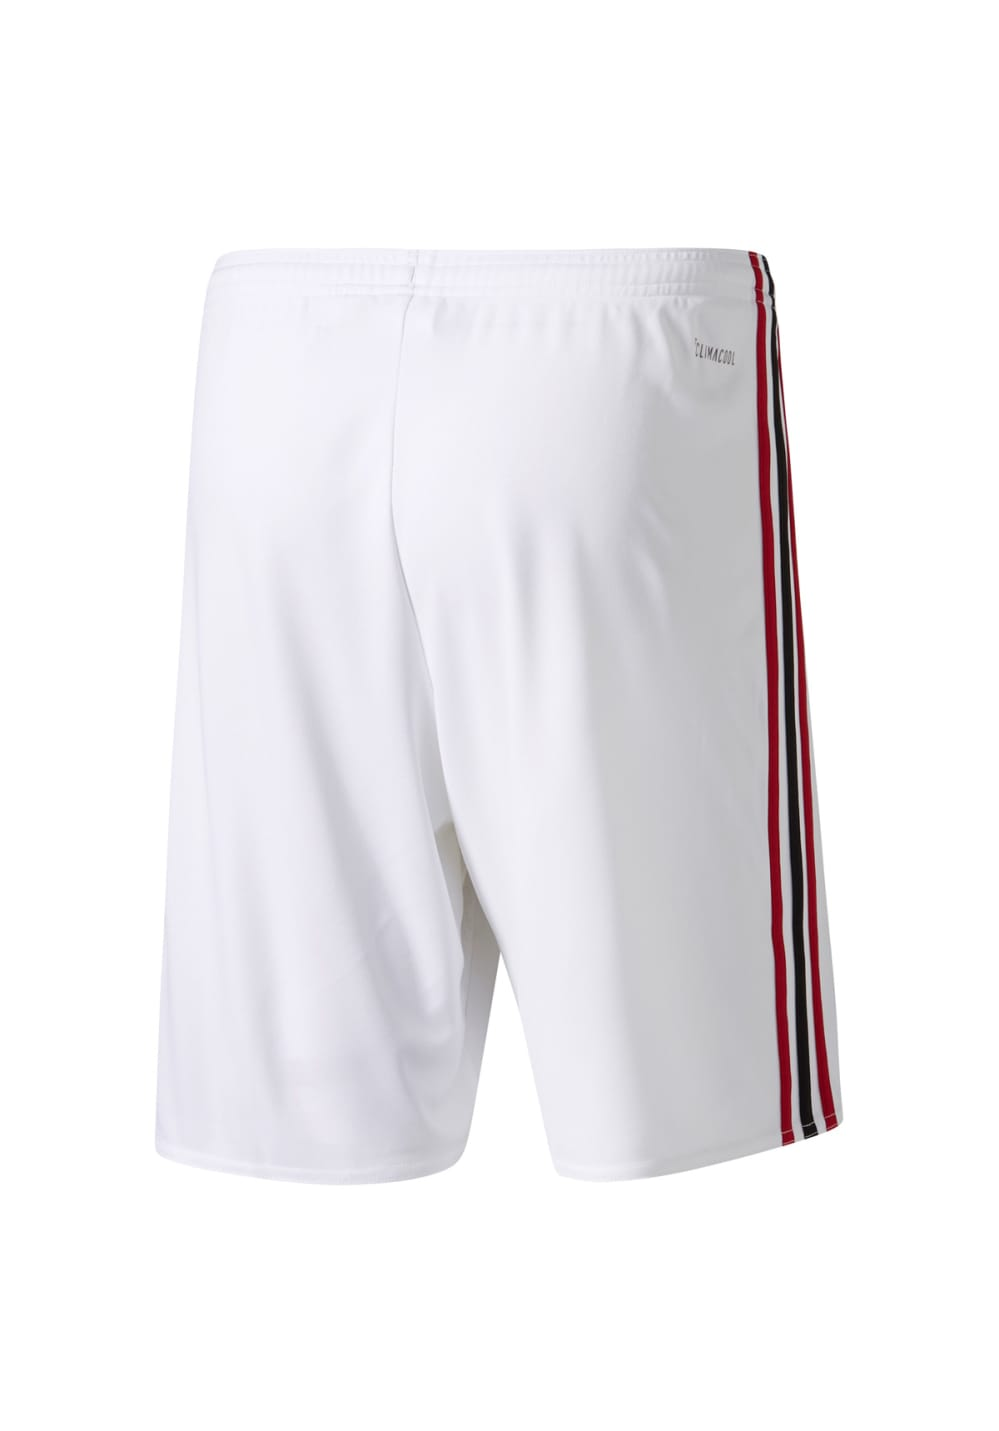 Pour Milan Pantalons Ac Homme Shorts Replica Fitness Adidas pBY4xqwCp